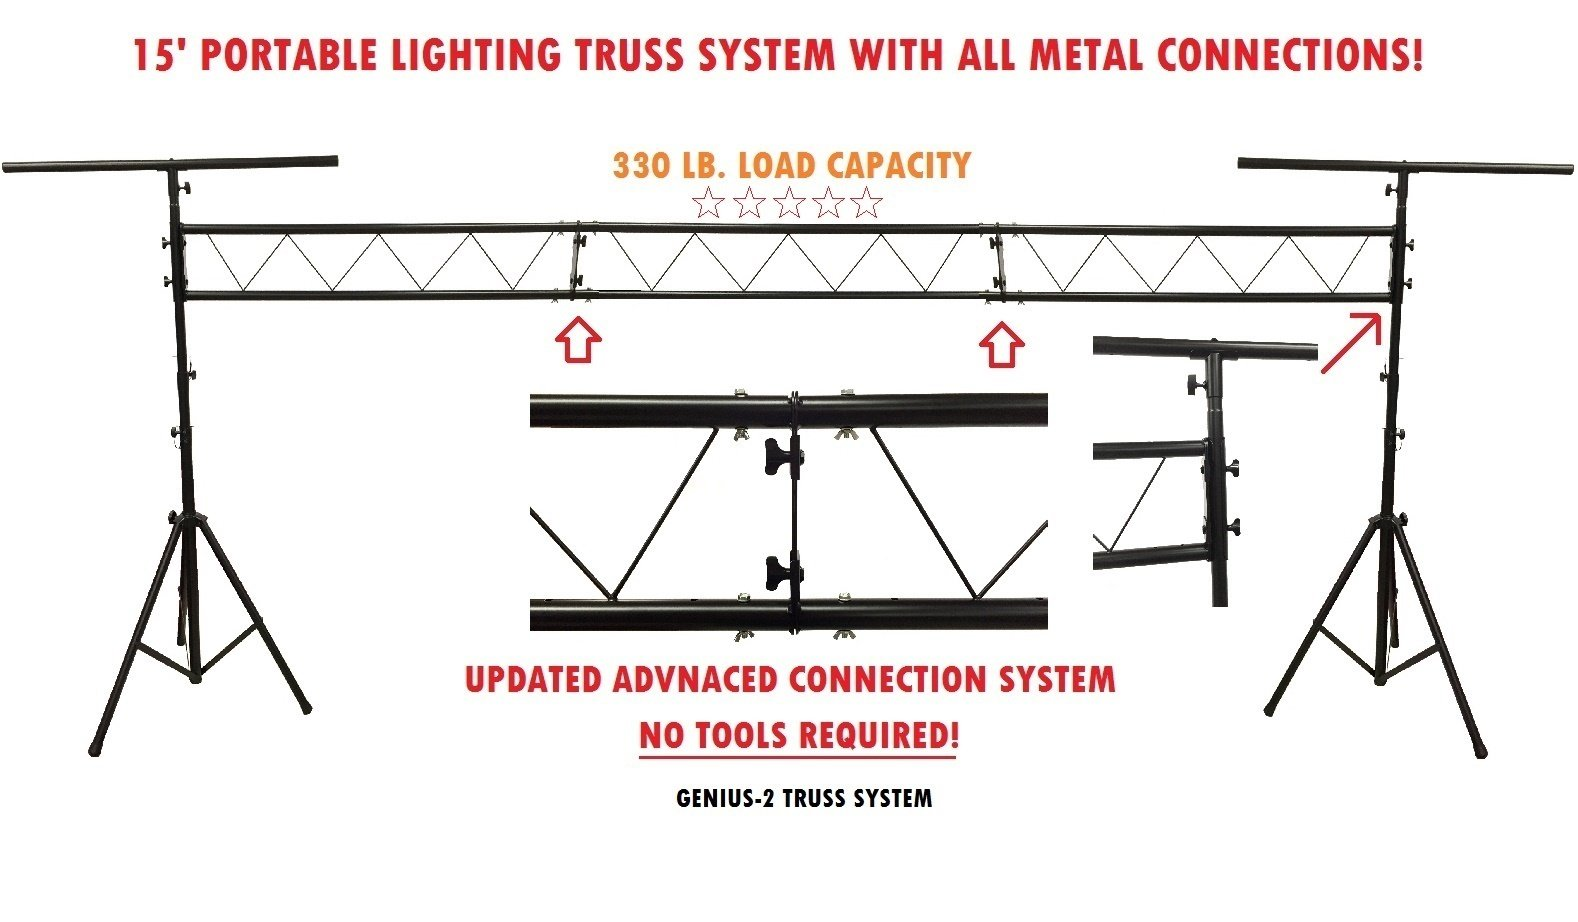 Pro Audio DJ Portable Light Lighting Fixture T Bar Stands 15Ft Truss Package Only Seller With Advanced Wing Nut Connection System! by Cedarslink